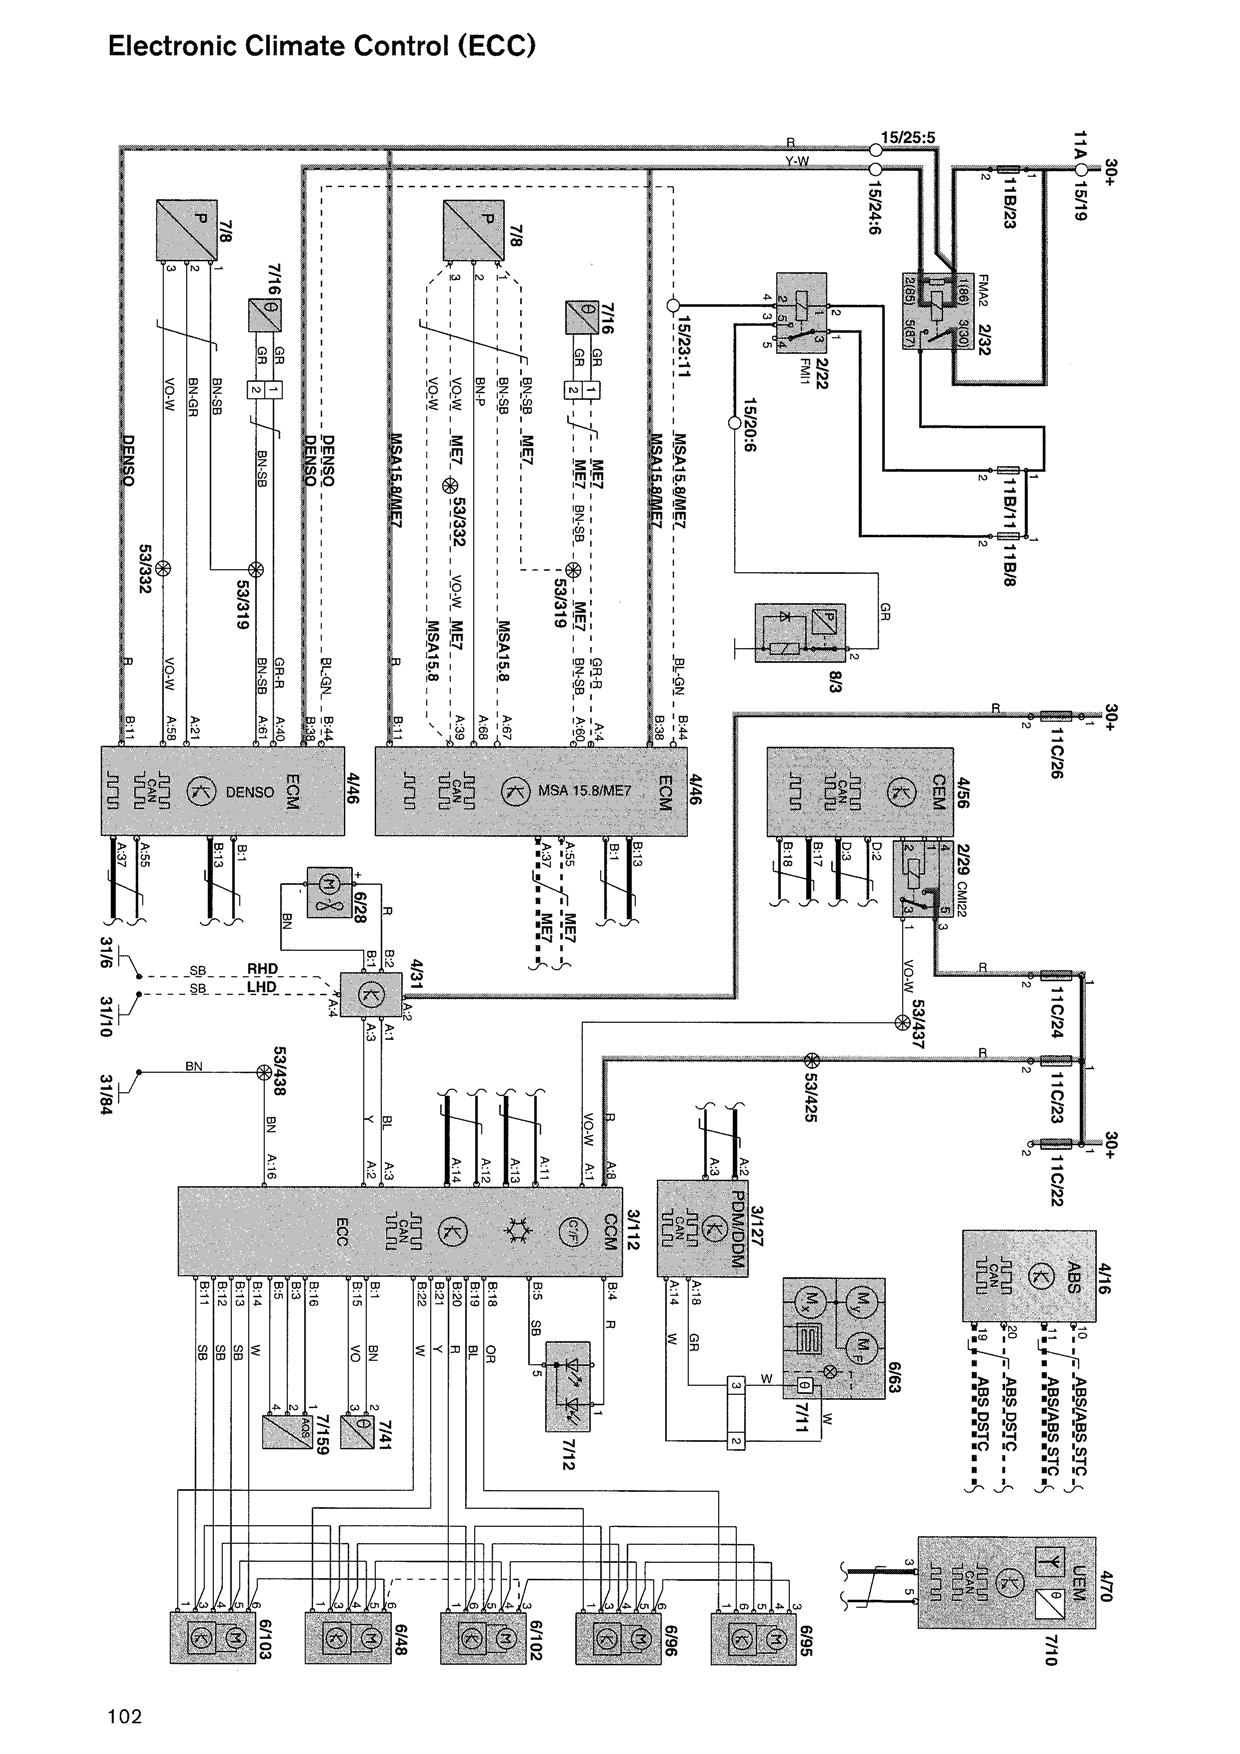 Volvo 740 Cooling Fan Relay Wiring Diagram on 1999 Volvo S70 Fuel Pump Relay Location